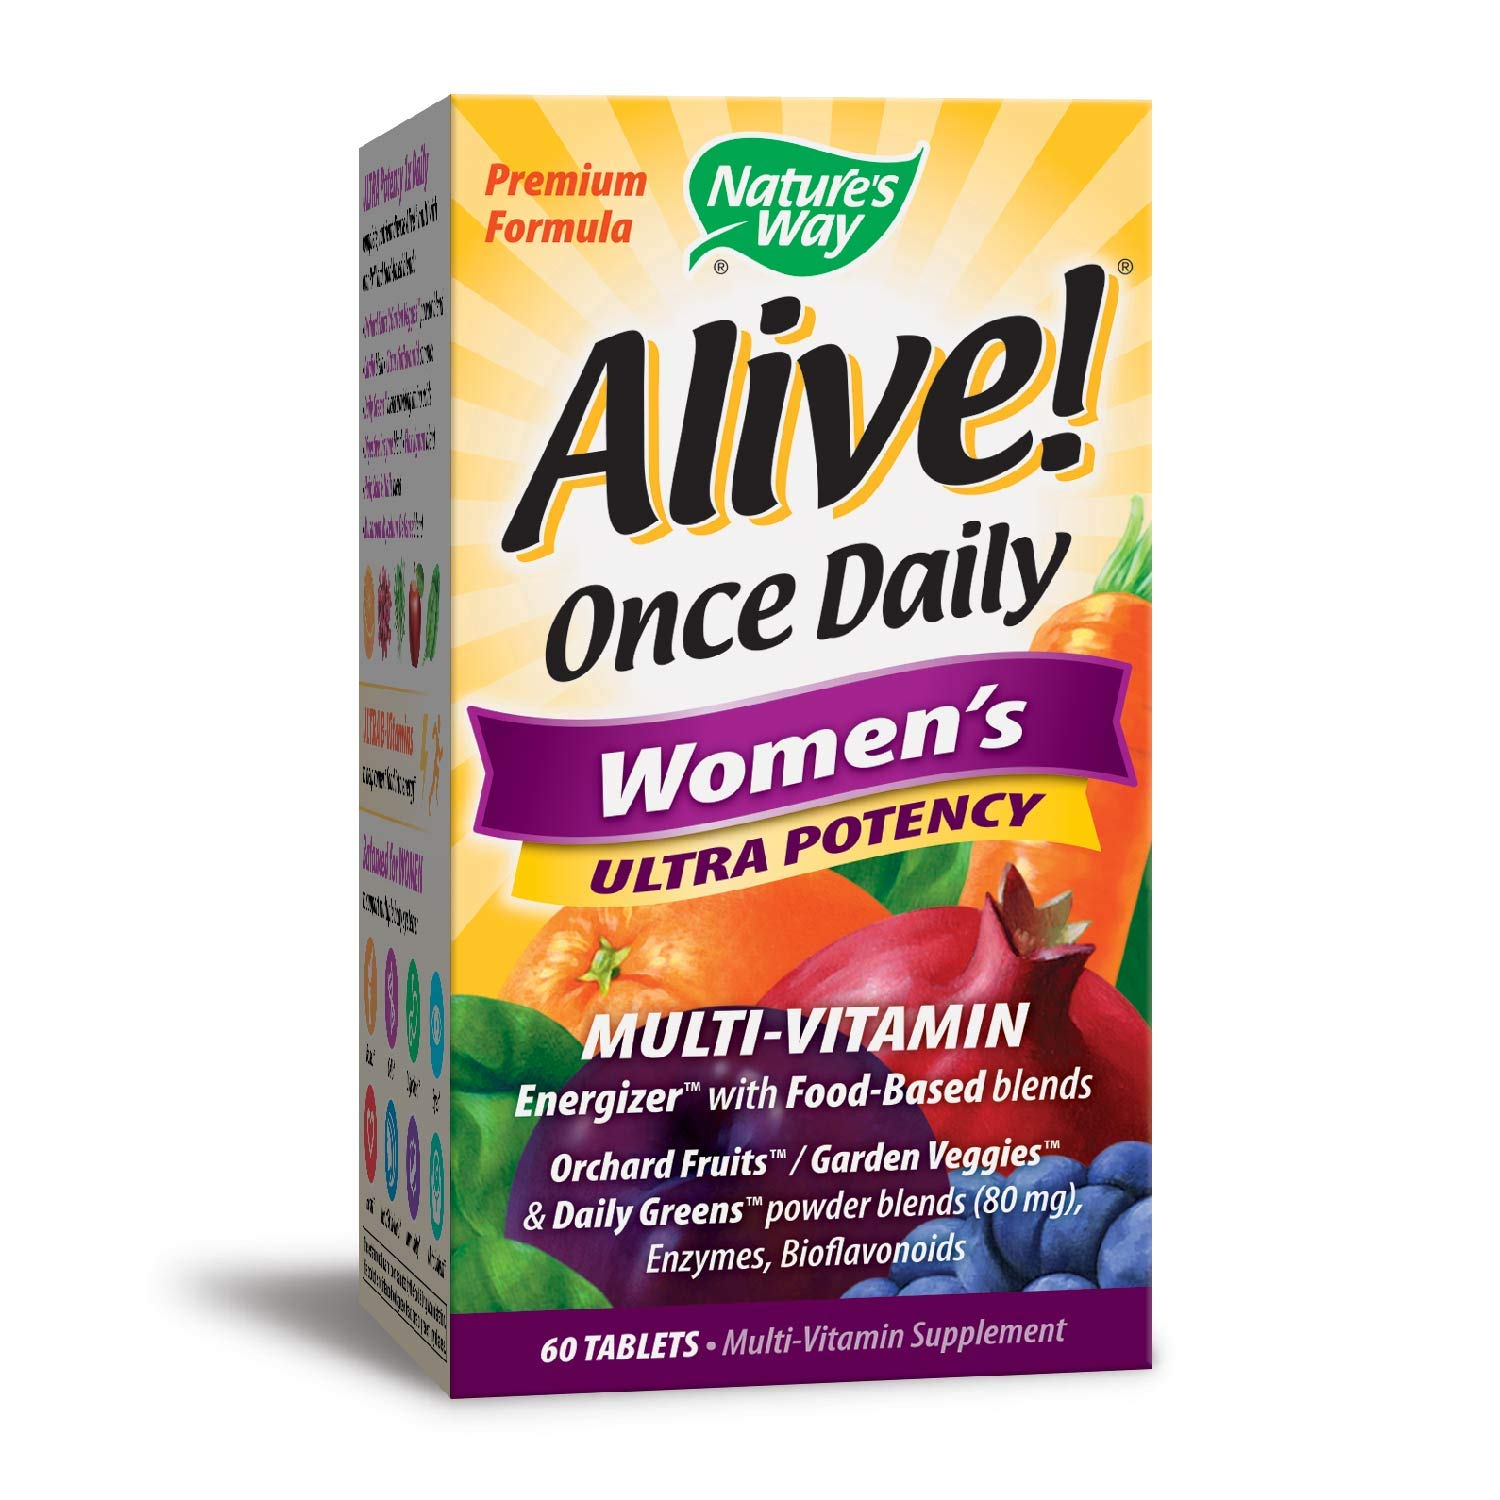 Nature's Way Alive! Once Daily Women's Multivitamin, Ultra Potency, Food-Based Blends (240mg per serving), 60 Tablets by Nature's Way